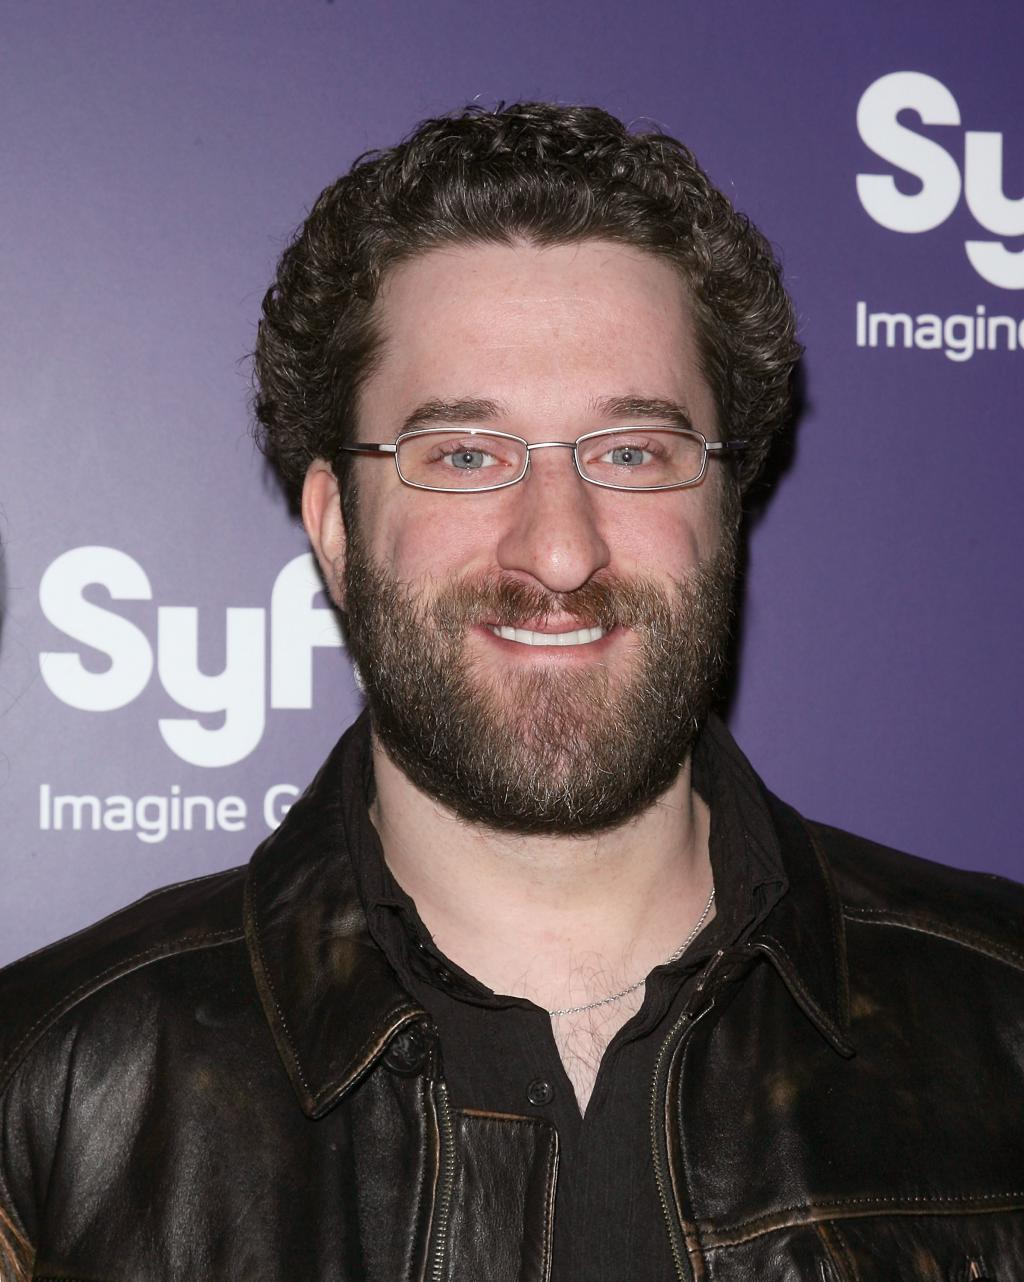 Saved By The Bell's Dustin Diamond Seeking Redemption In Bell Biopic